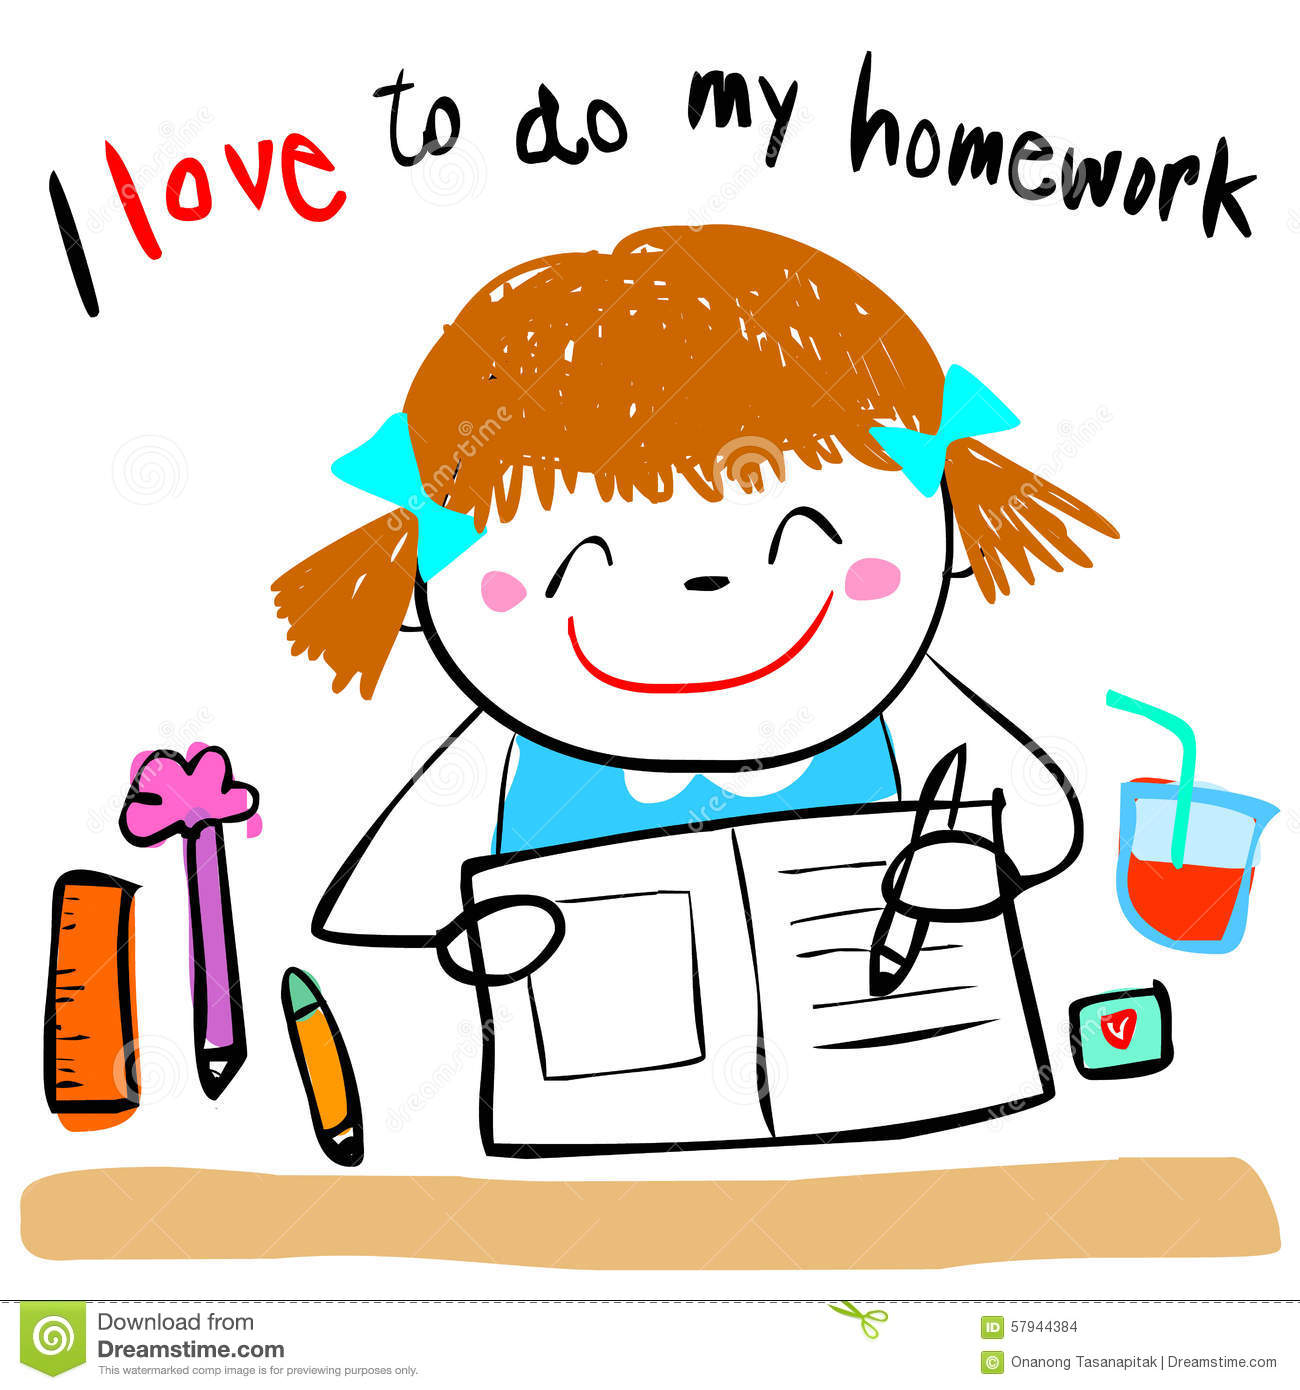 help me homework We can do your homework for you any class: math, biology, physics, programming and chemistry ツ assignments made easy with our expert writing help⓵ whenever your homework assignments start piling up, don't panic and use our homework service instead we can do your assignment 24/7, any time of the year.